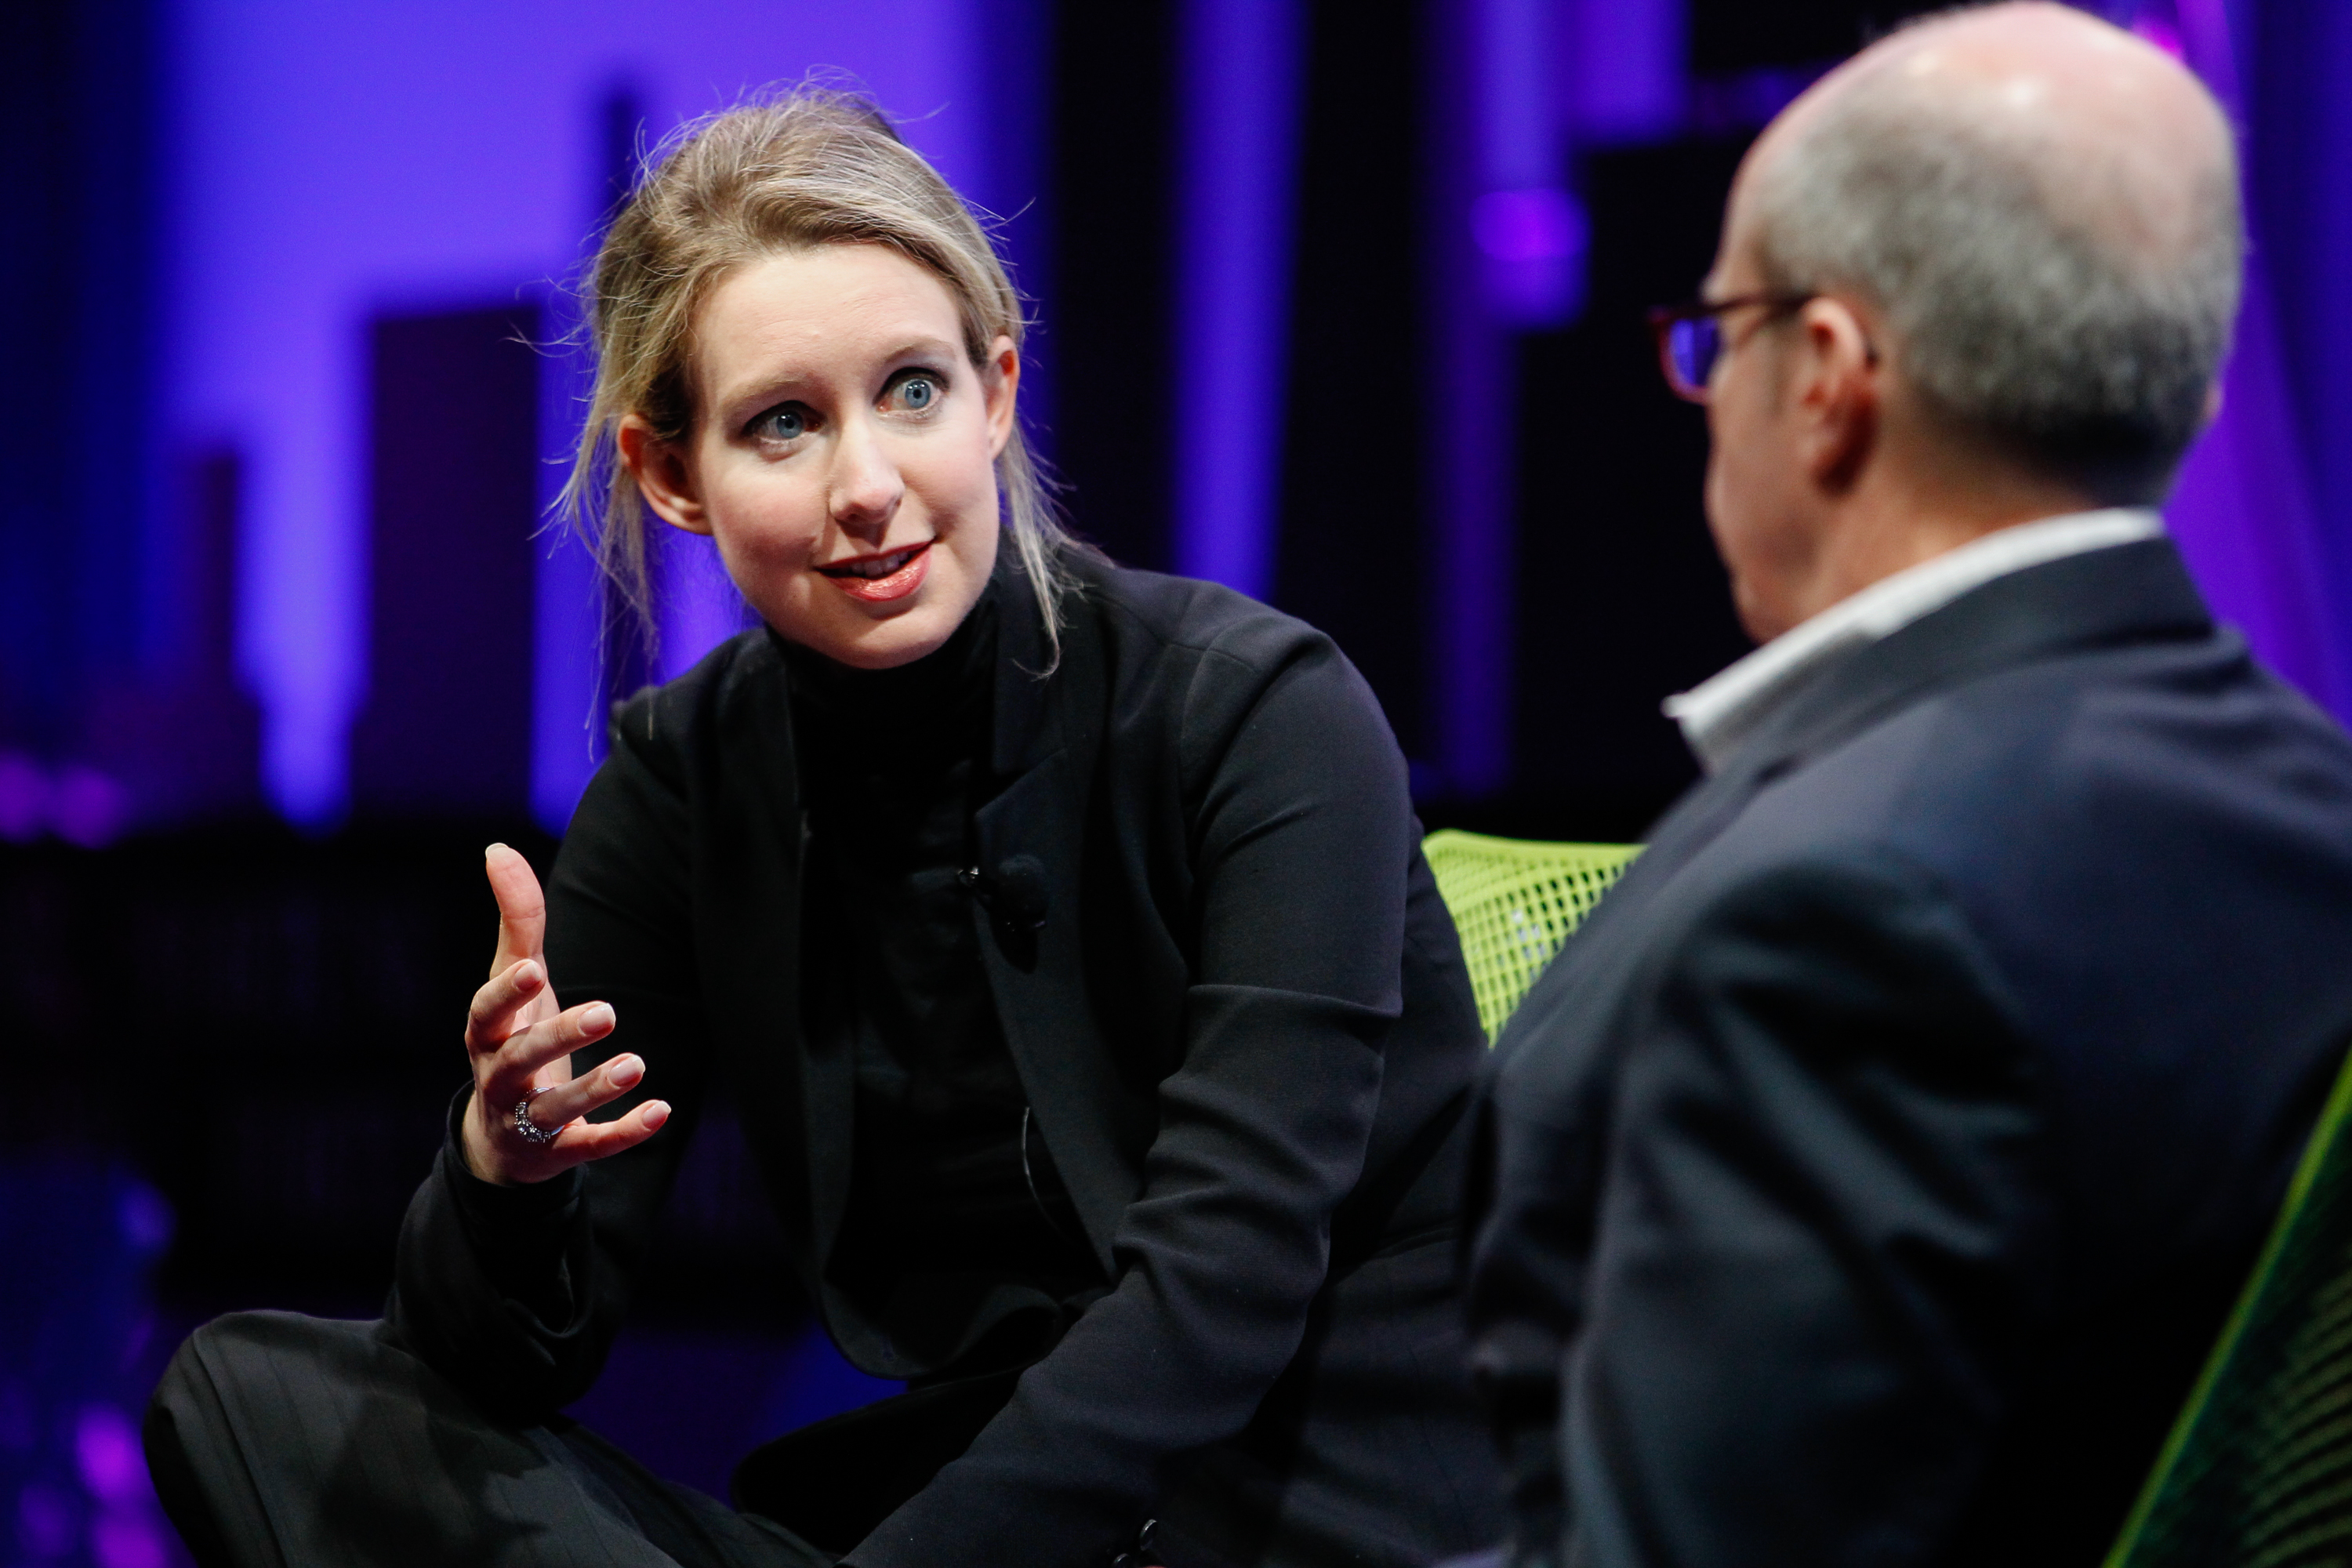 Elizabeth Holmes (L) and Alan Murray speak at the Fortune Global Forum at the Fairmont Hotel on Nov. 2, 2015 in San Francisco.